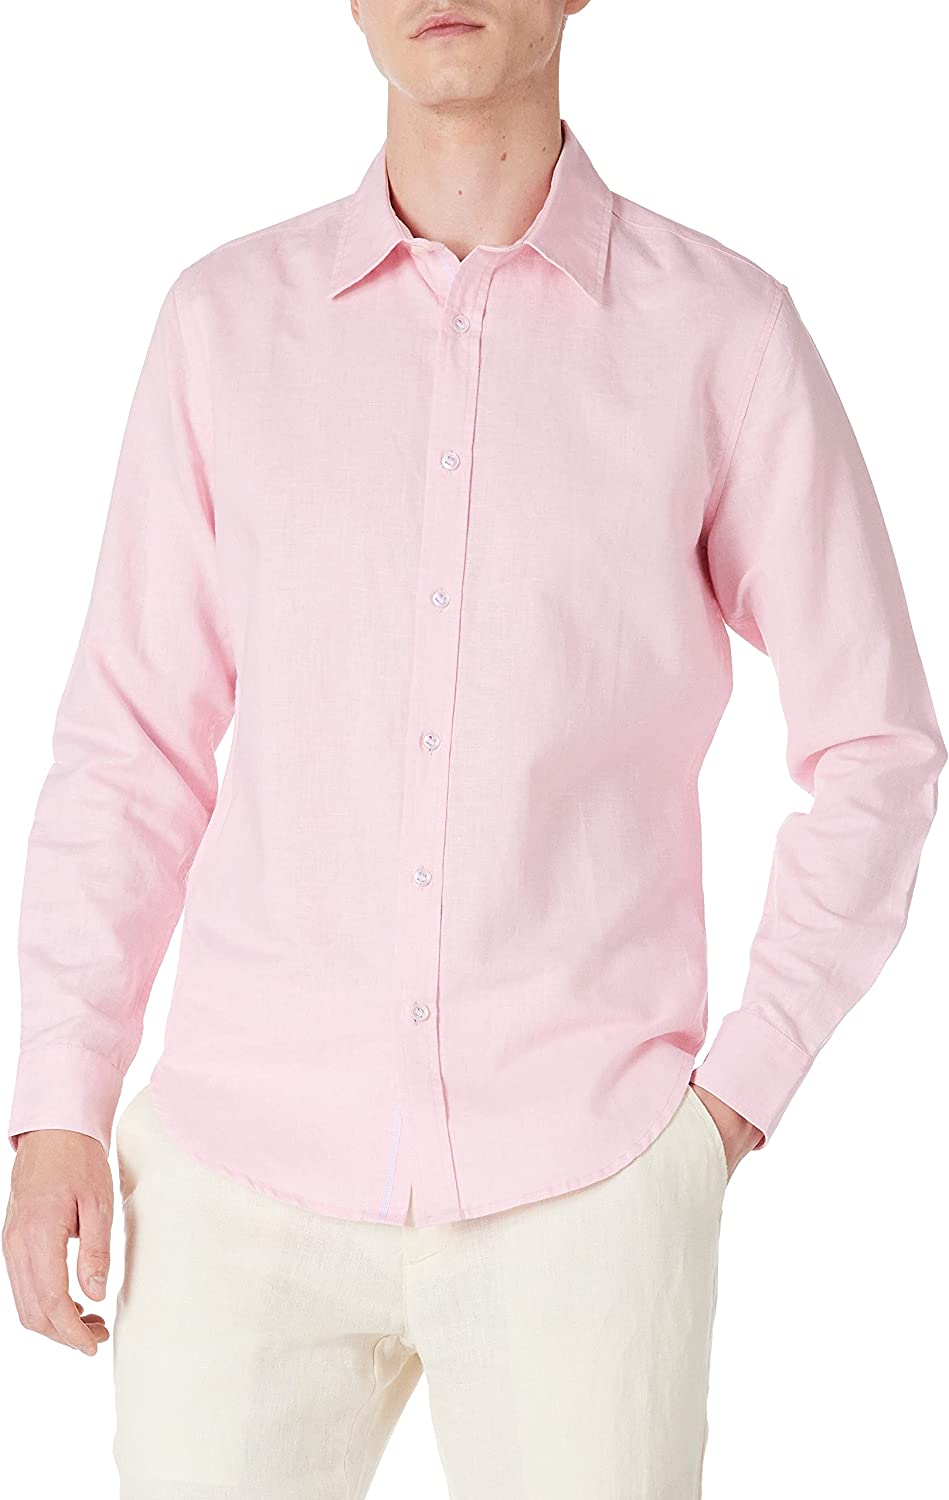 Isle Bay Linens Direct sale of manufacturer Directly managed store Men's Standard-Fit Casual Long Sleeve Shirt